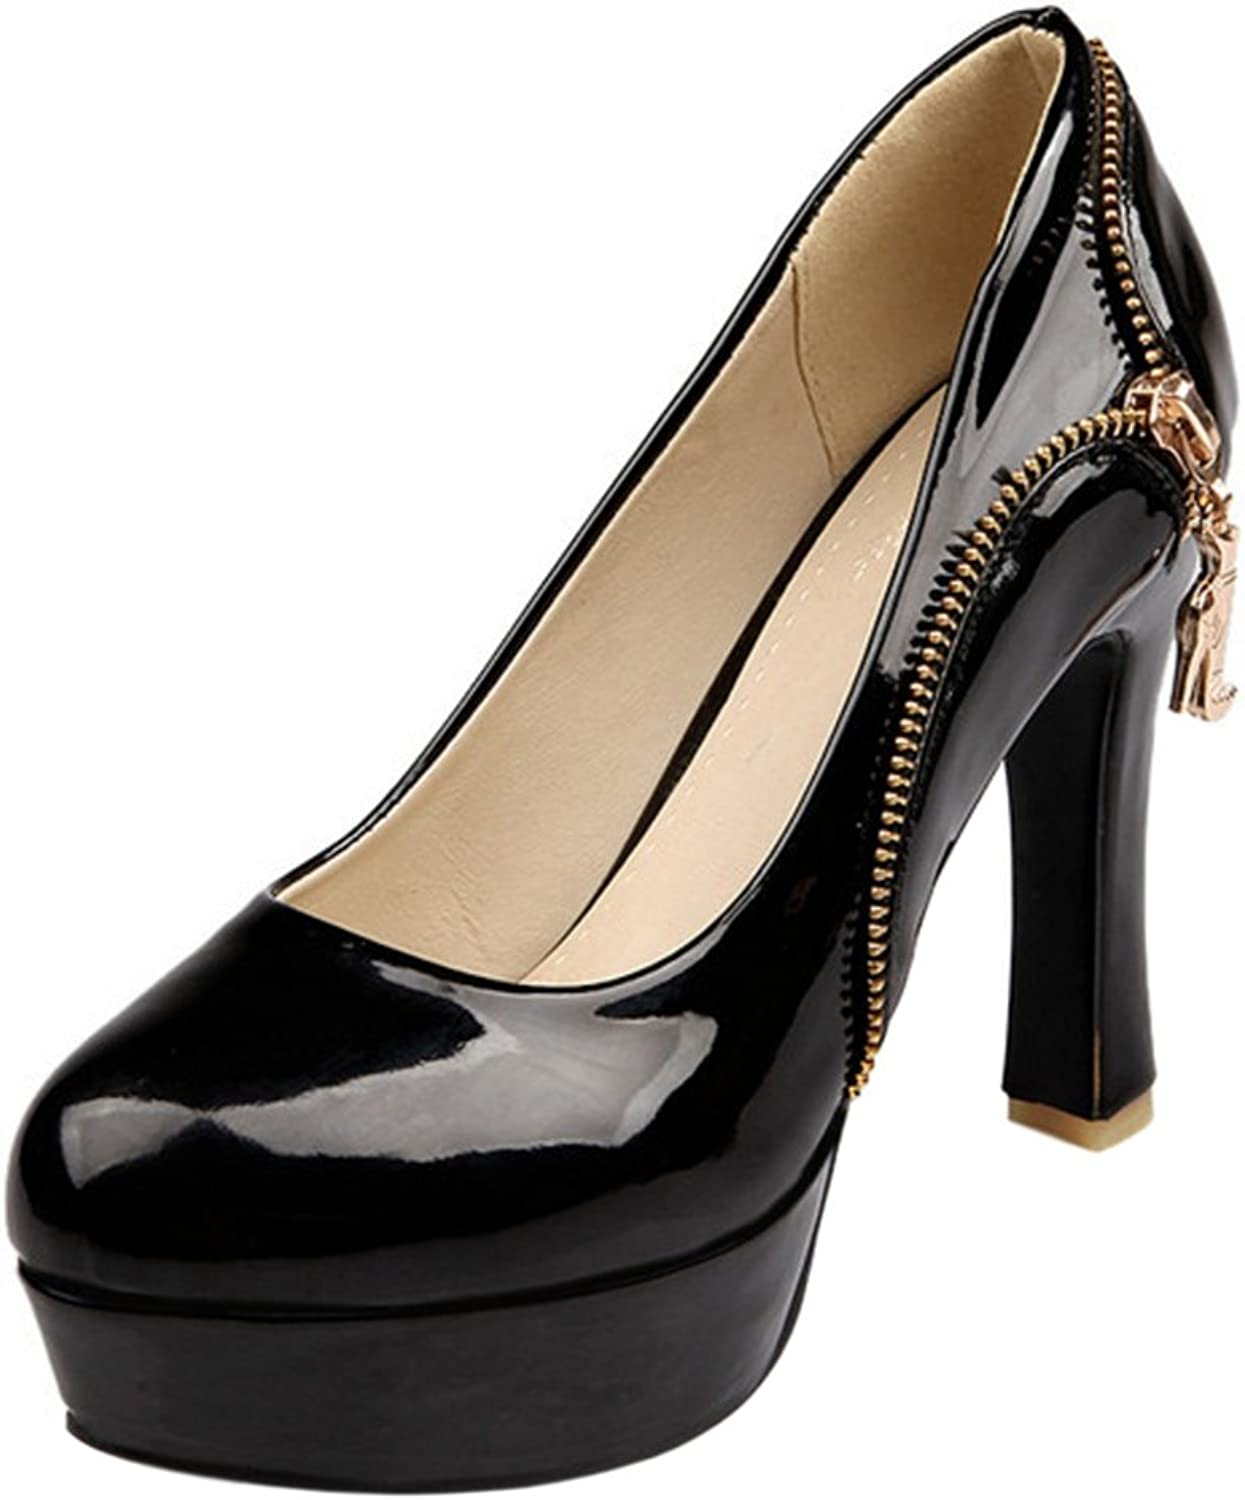 ELEEMEE Women Fashion High Heel Party Pumps